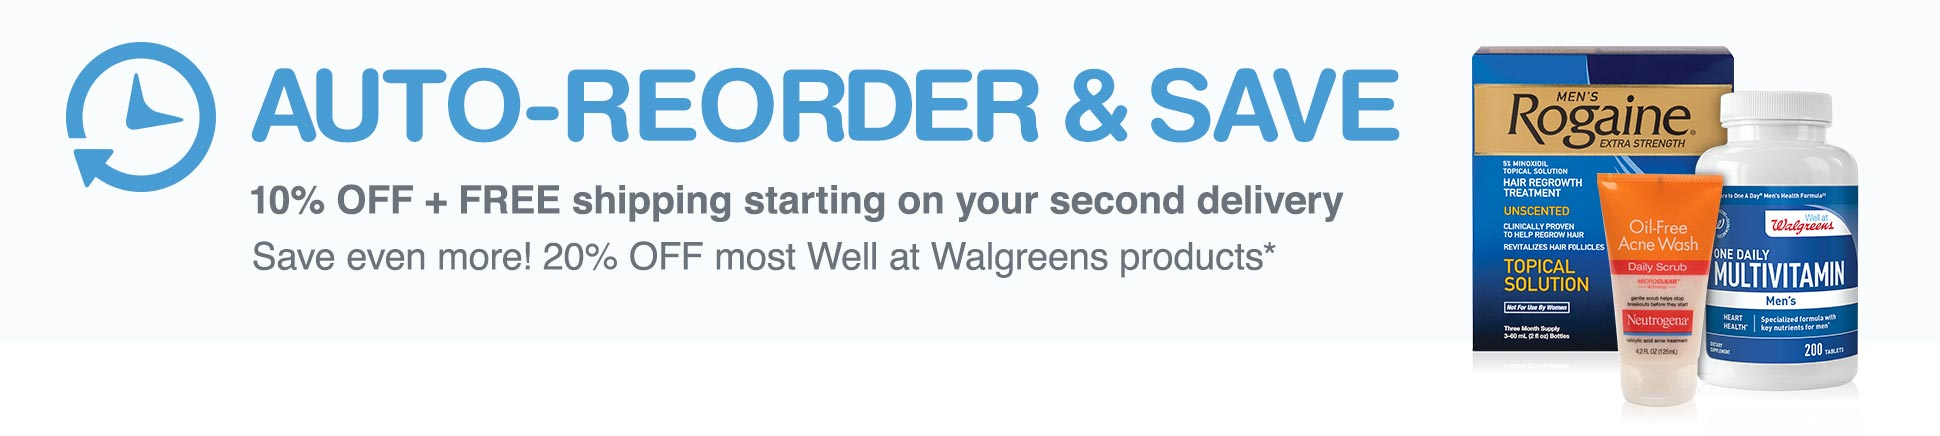 Auto-Reorder & Save 10% OFF & FREE Shipping starting on your 2nd delivery. Save even more! 20% OFF most Well at Walgreens products*